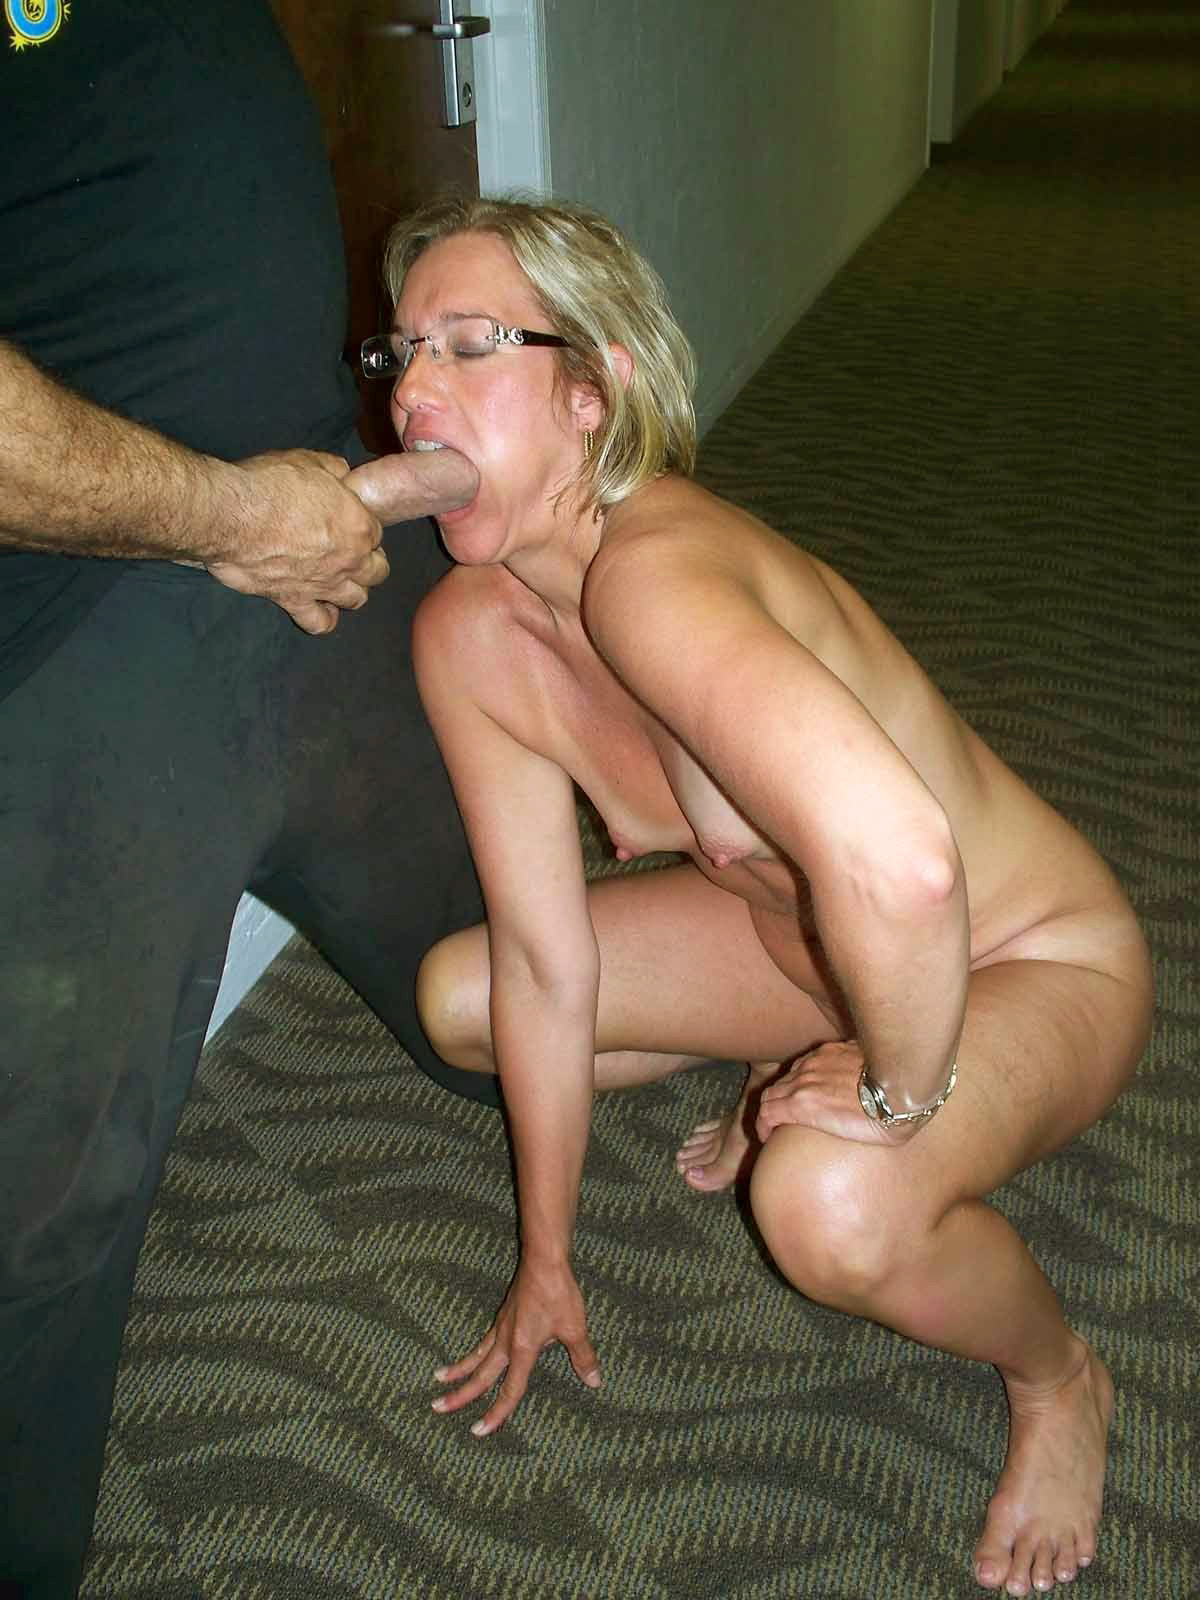 Forum showing wife naked to a friend